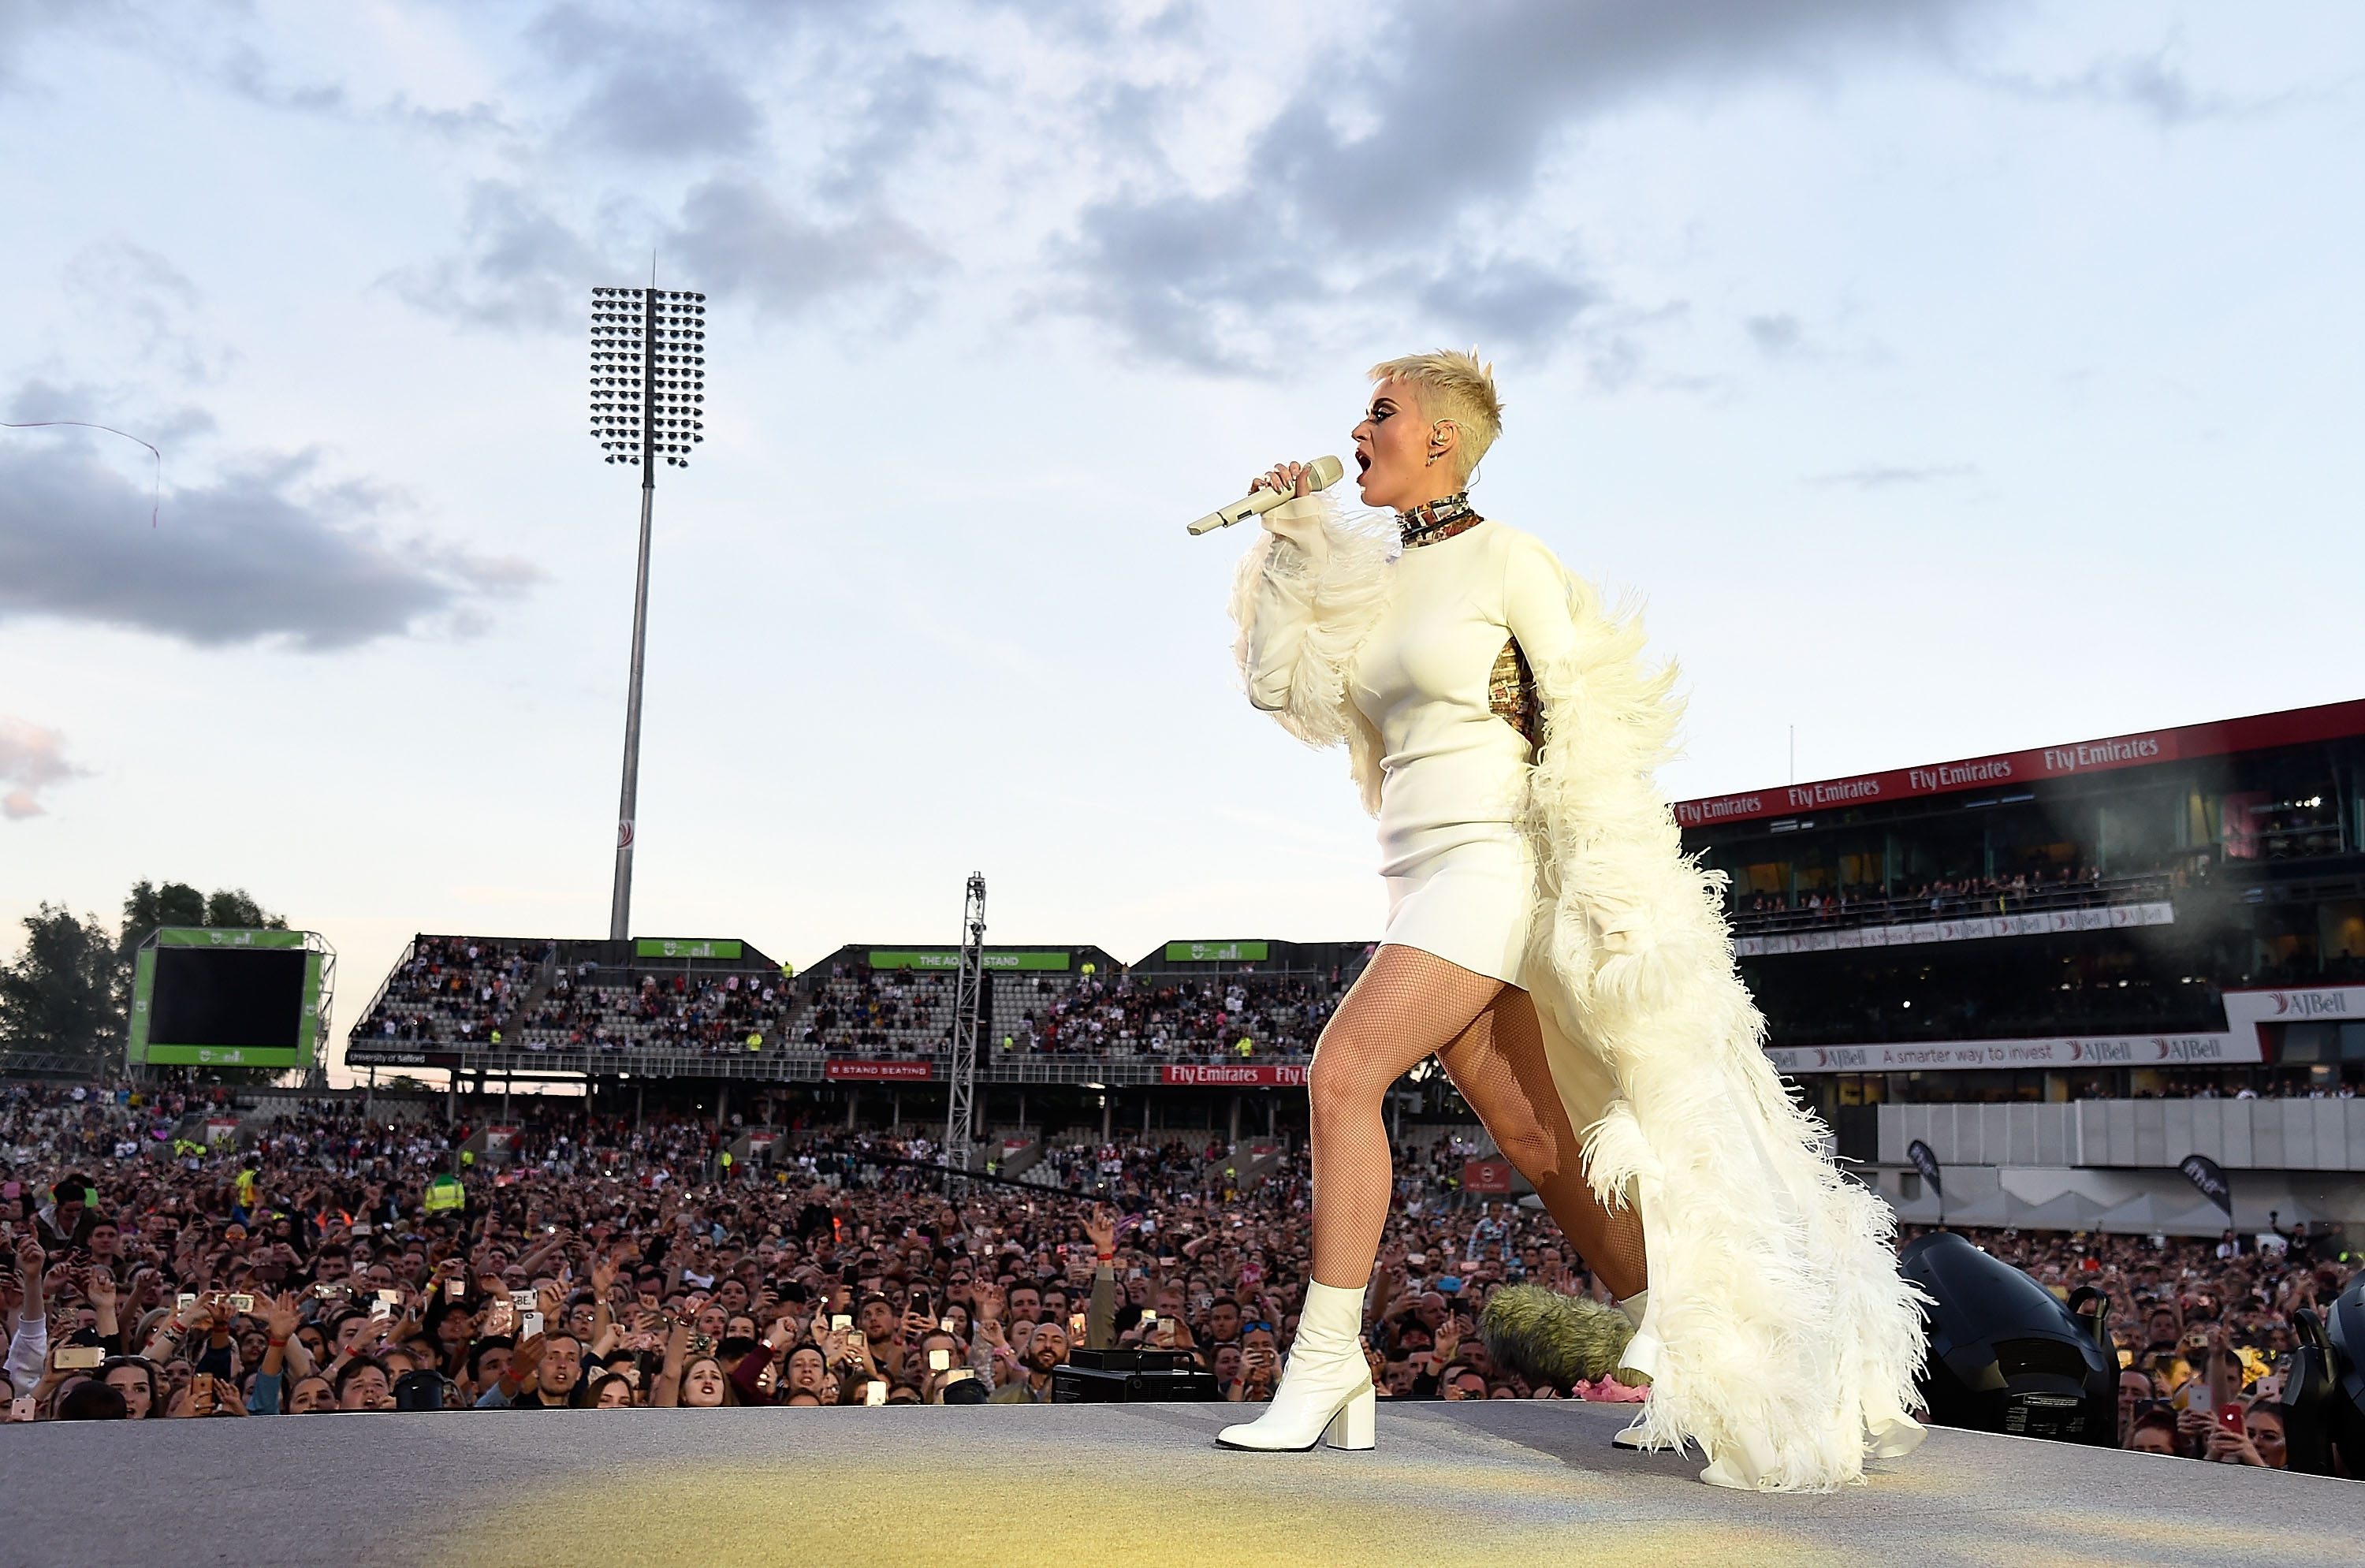 Katy Perry performs on stage during the One Love Manchester Benefit Concert at Old Trafford Cricket Ground on June 4, 2017 in Manchester, England.